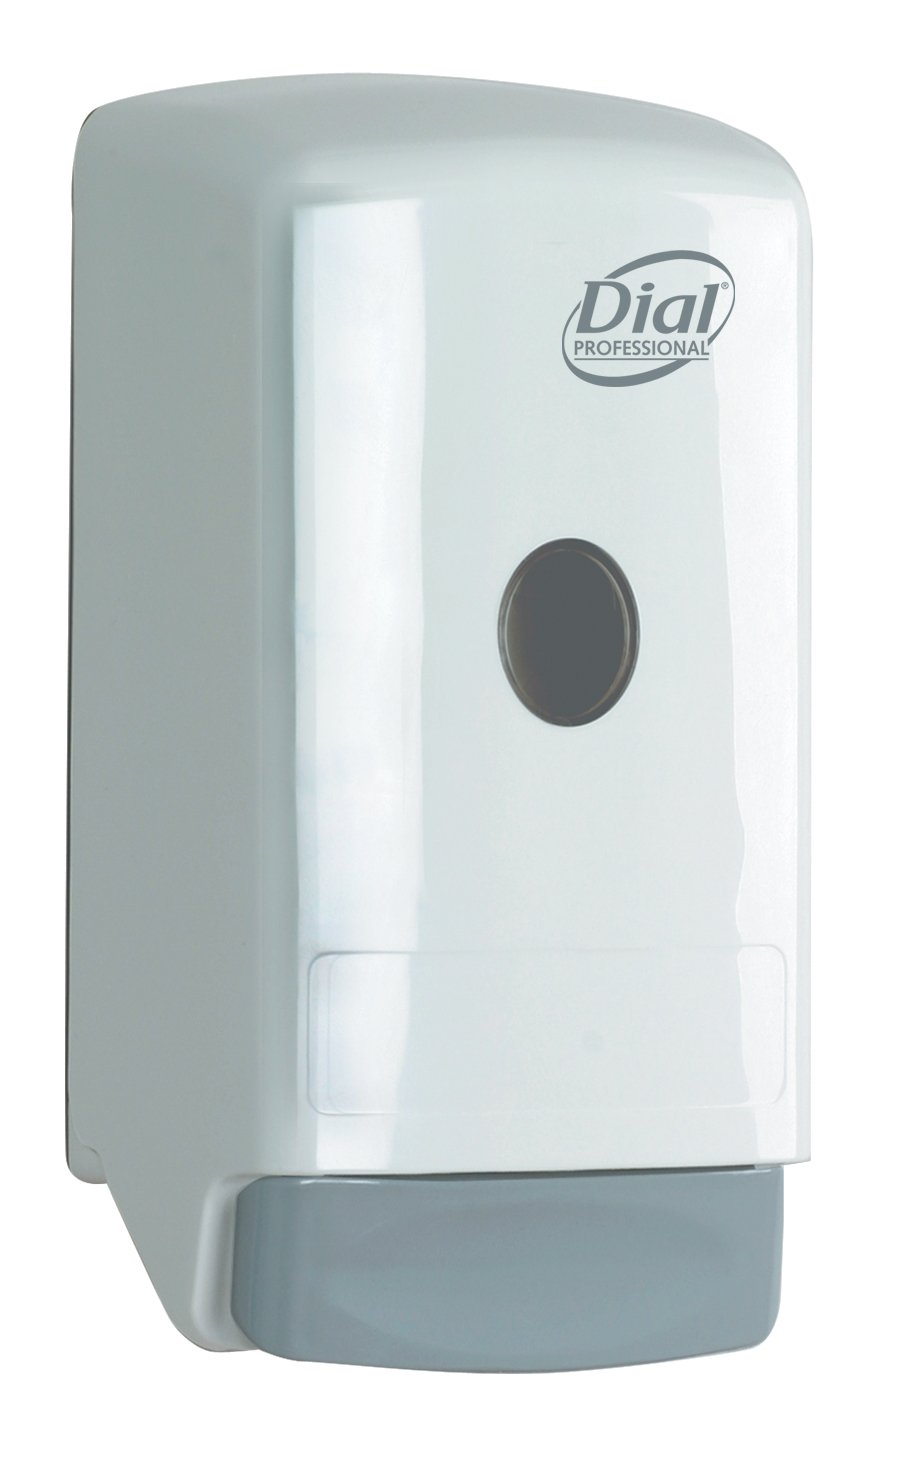 Dial Model 22 800mL White Dispenser for Liquid Hand Soap and Gel Hand Sanitizers,  5.25 Width x 10.25 Height x 4 Depth, (Pack of 6)